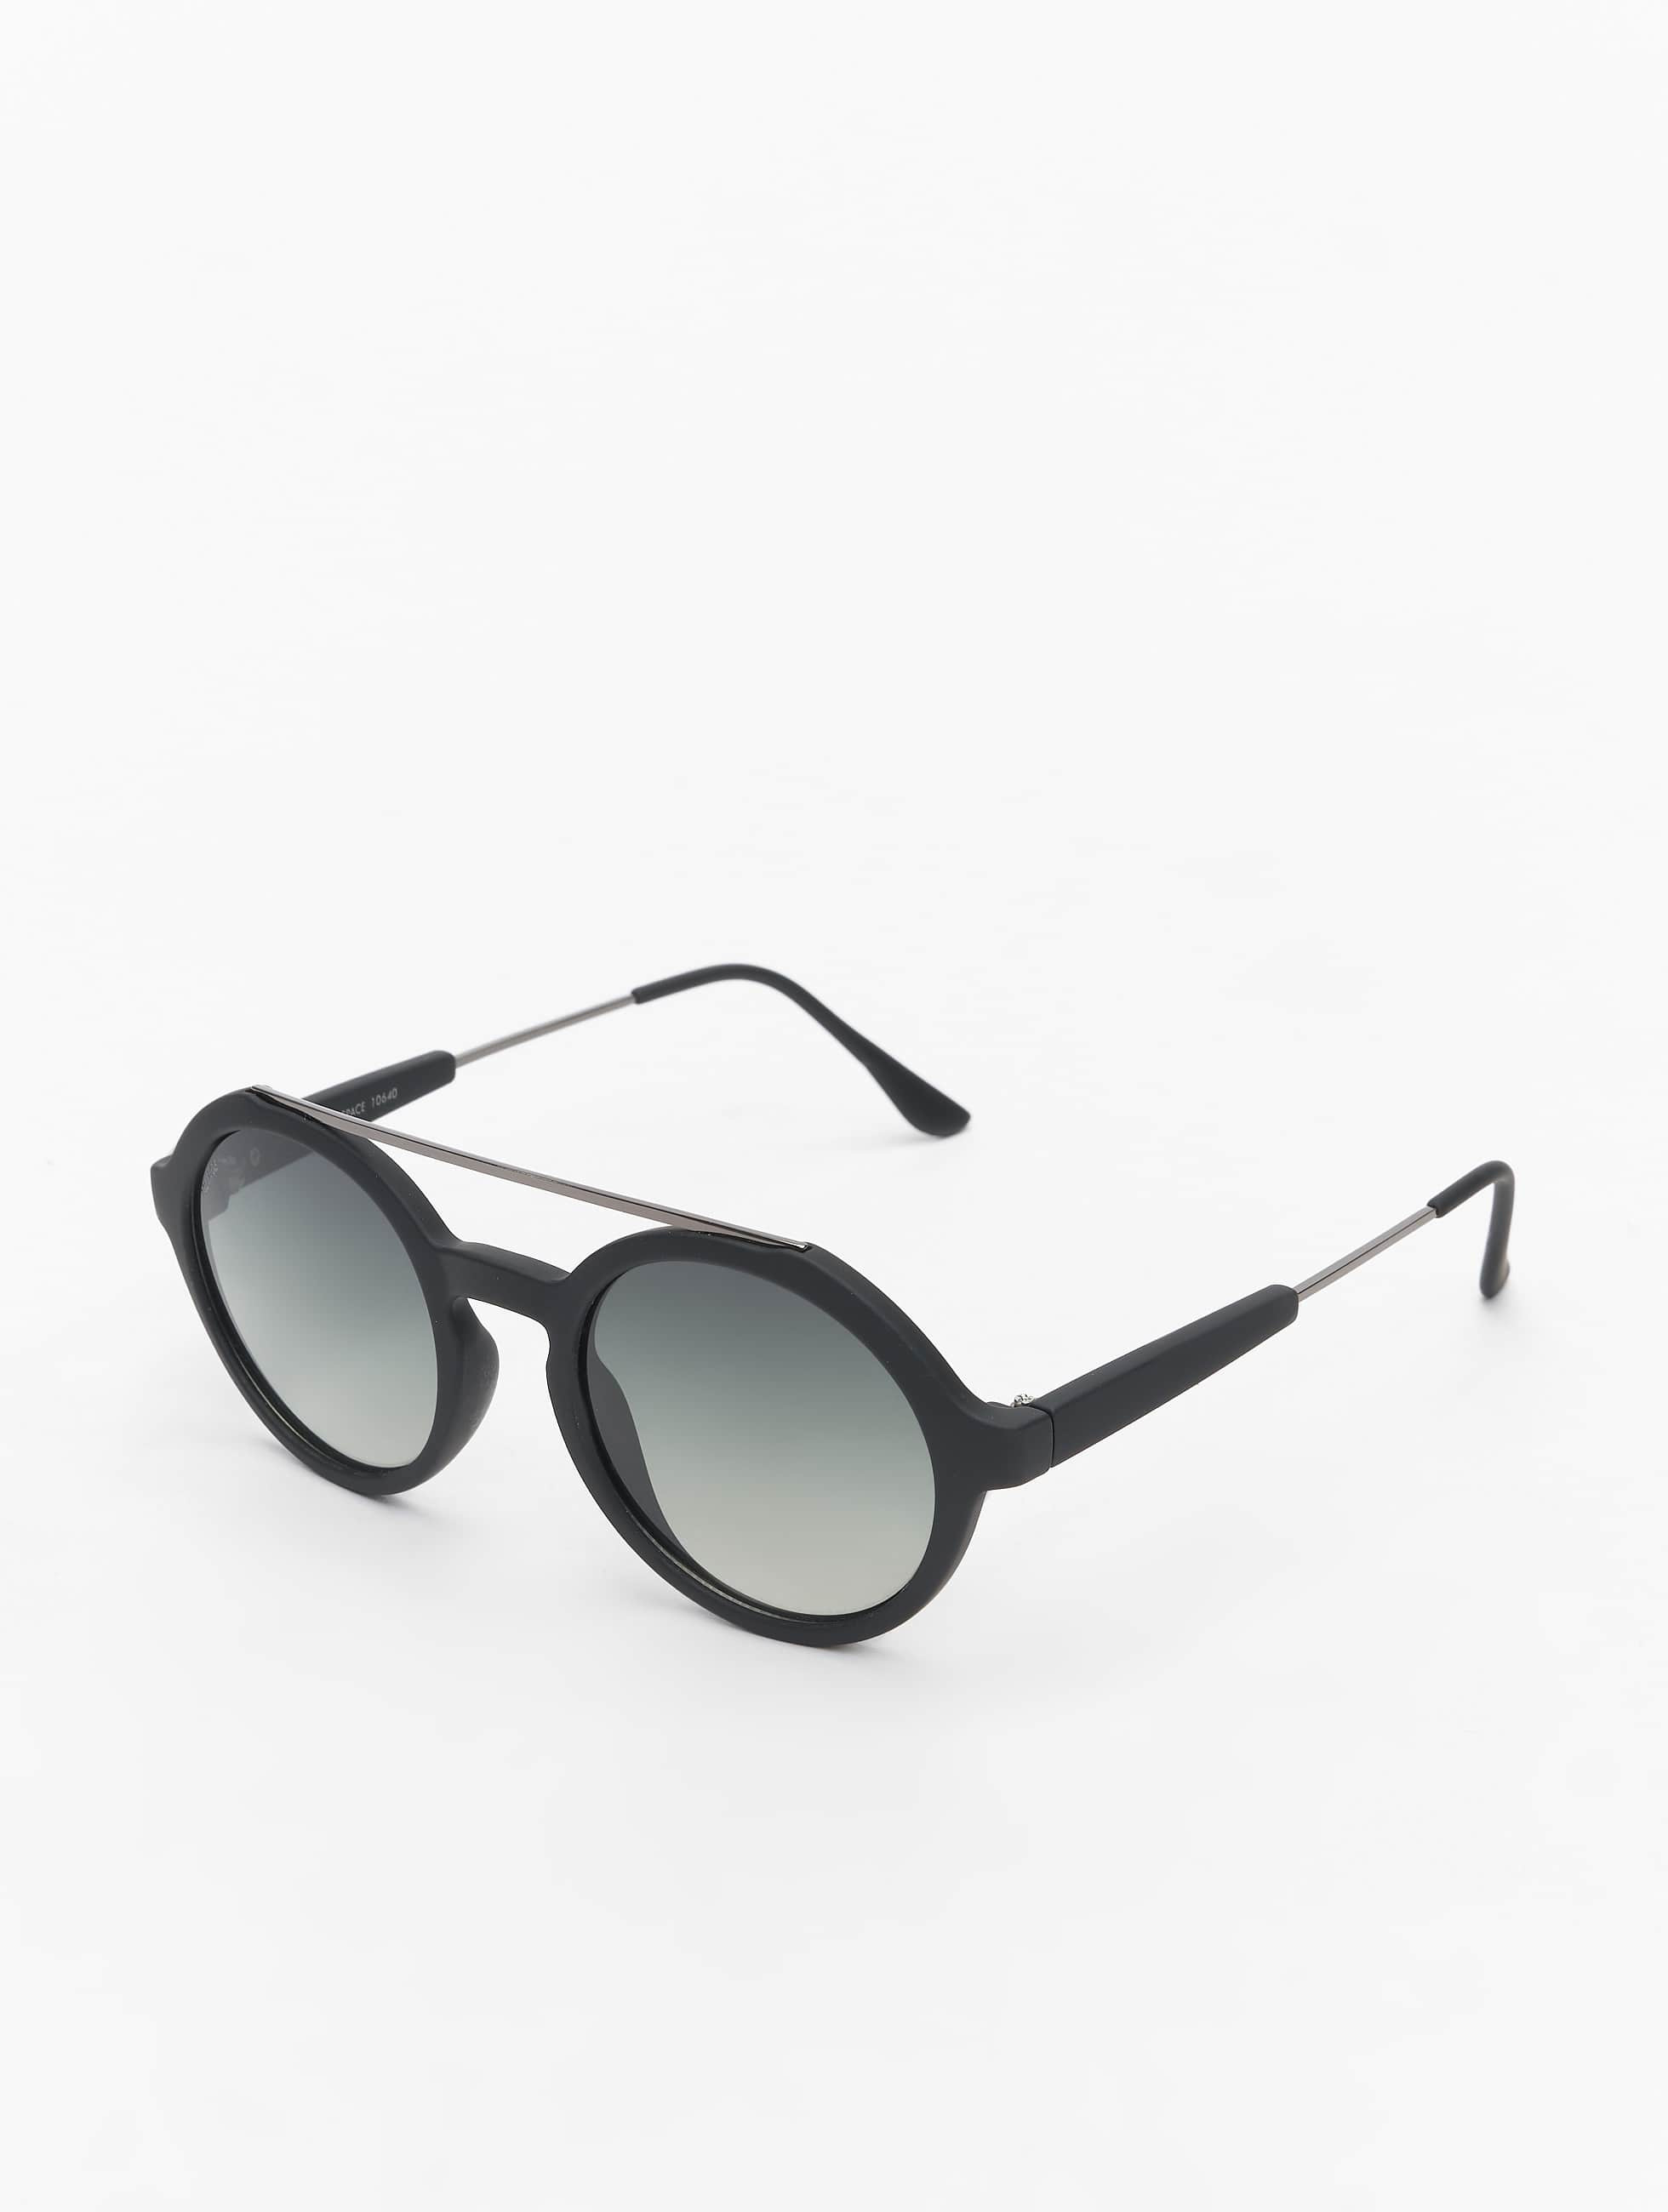 MSTRDS Zonnebril Retro Space Polarized Mirror zwart